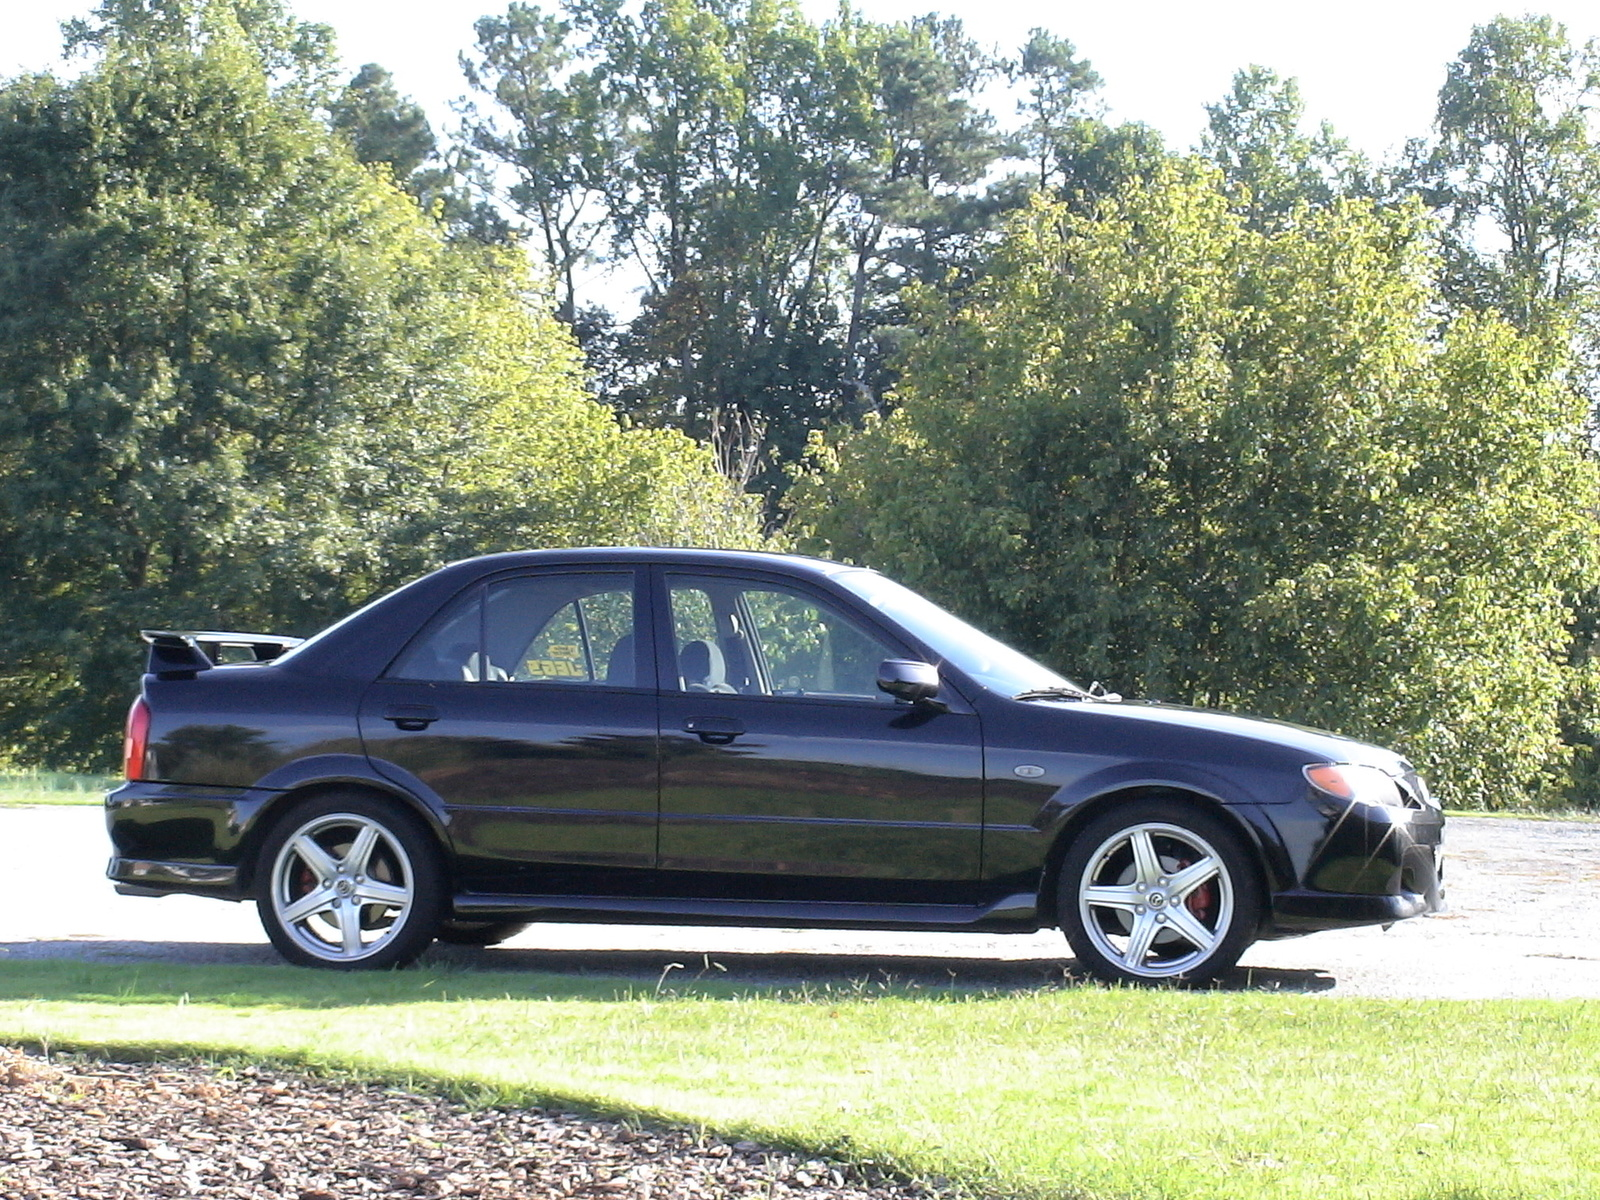 picture of 2003 mazda mazdaspeed protege 4 dr turbo sedan. Black Bedroom Furniture Sets. Home Design Ideas